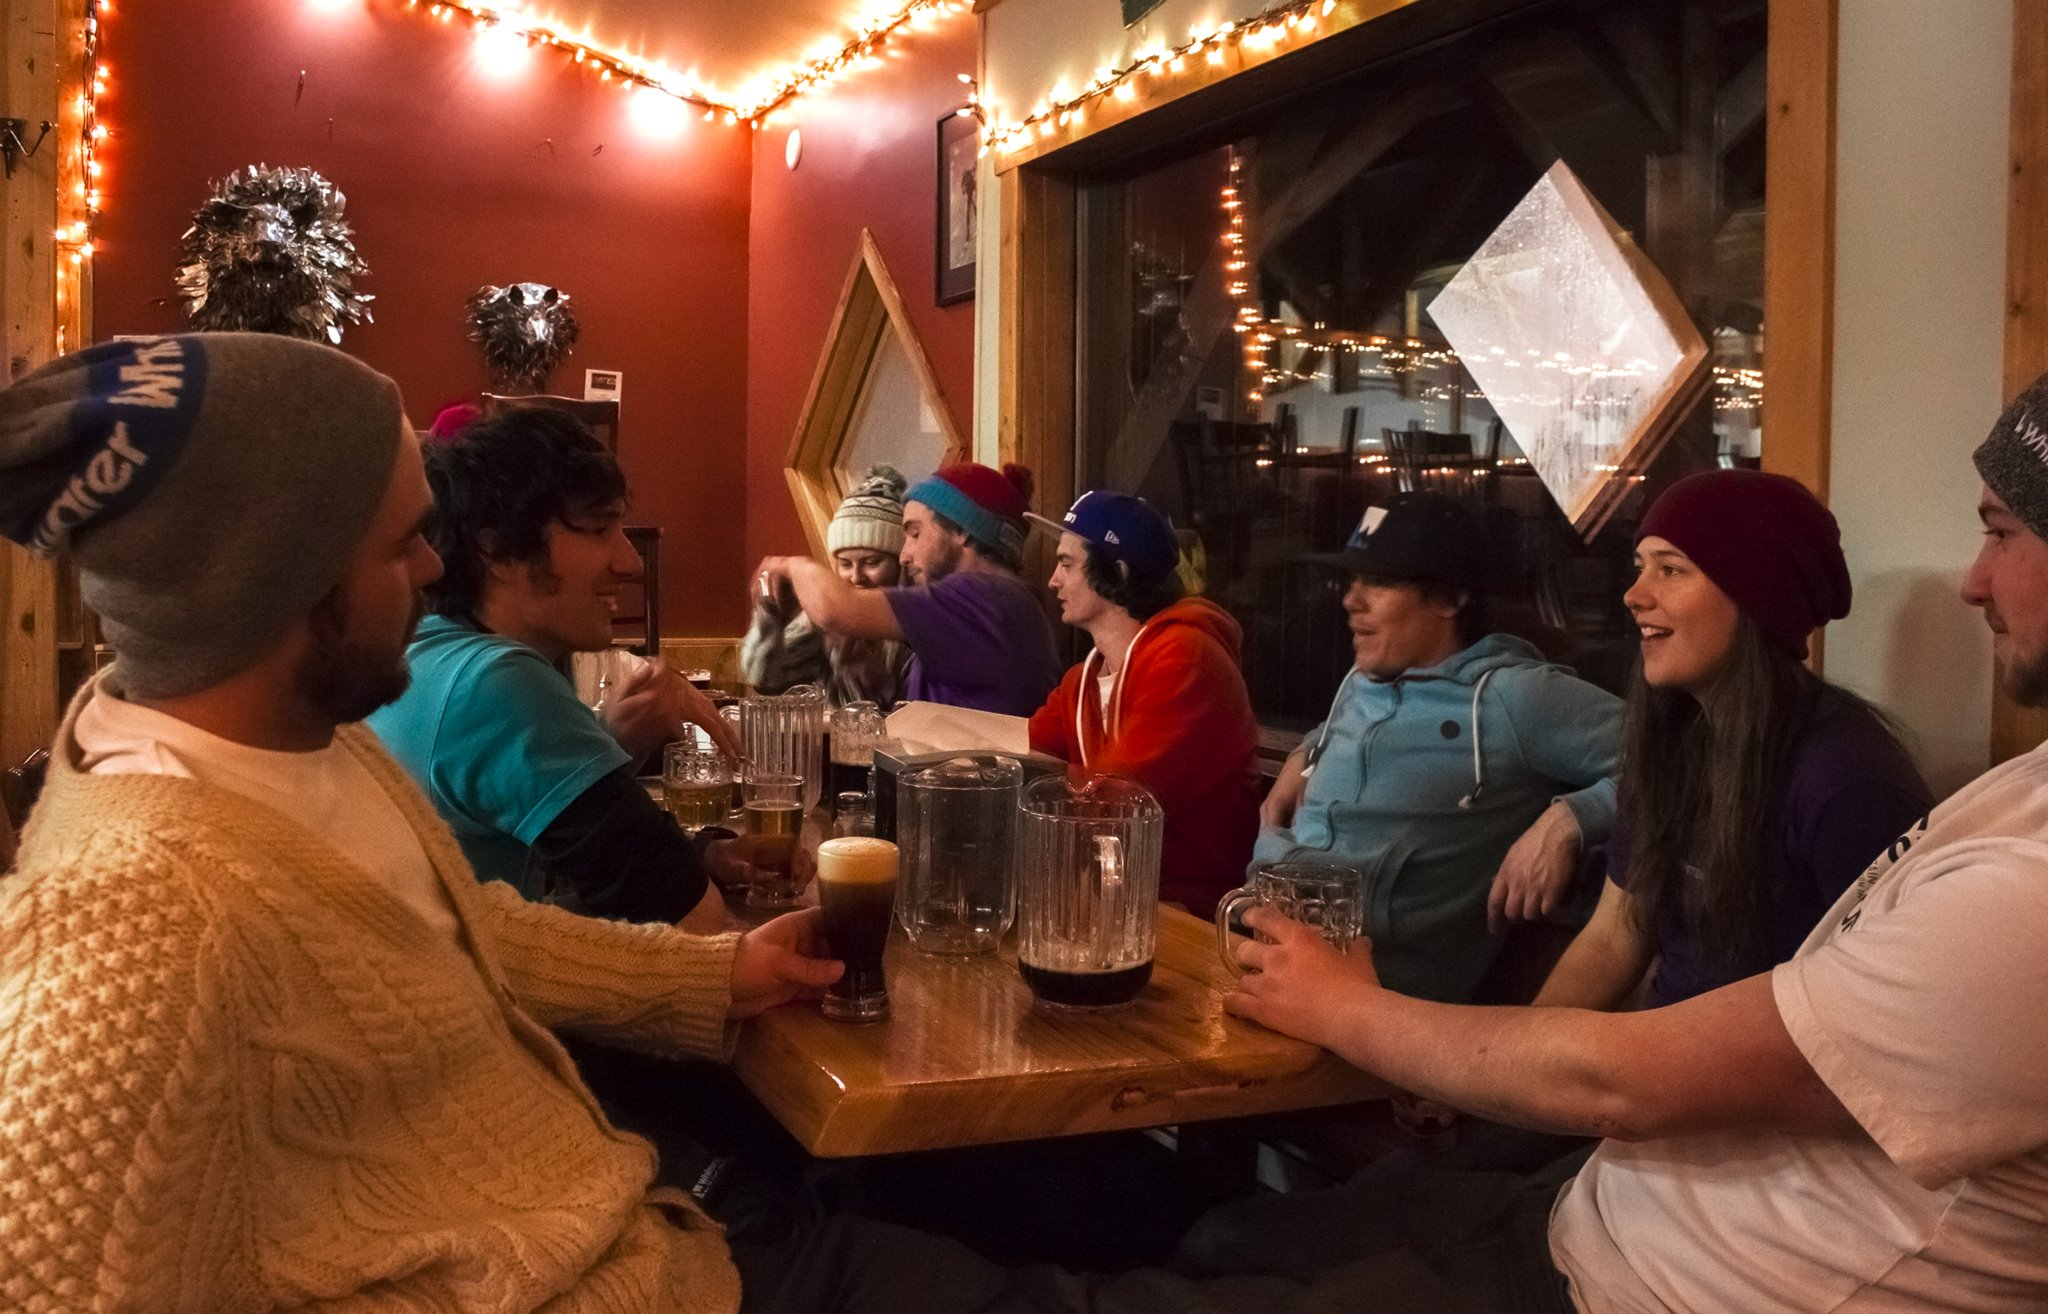 """Whitewater ski instructors hang out after work at Whitewater Ski Resort's """"Coal Oil Johnny's"""" in Nelson. Photo: Gina Bégin"""